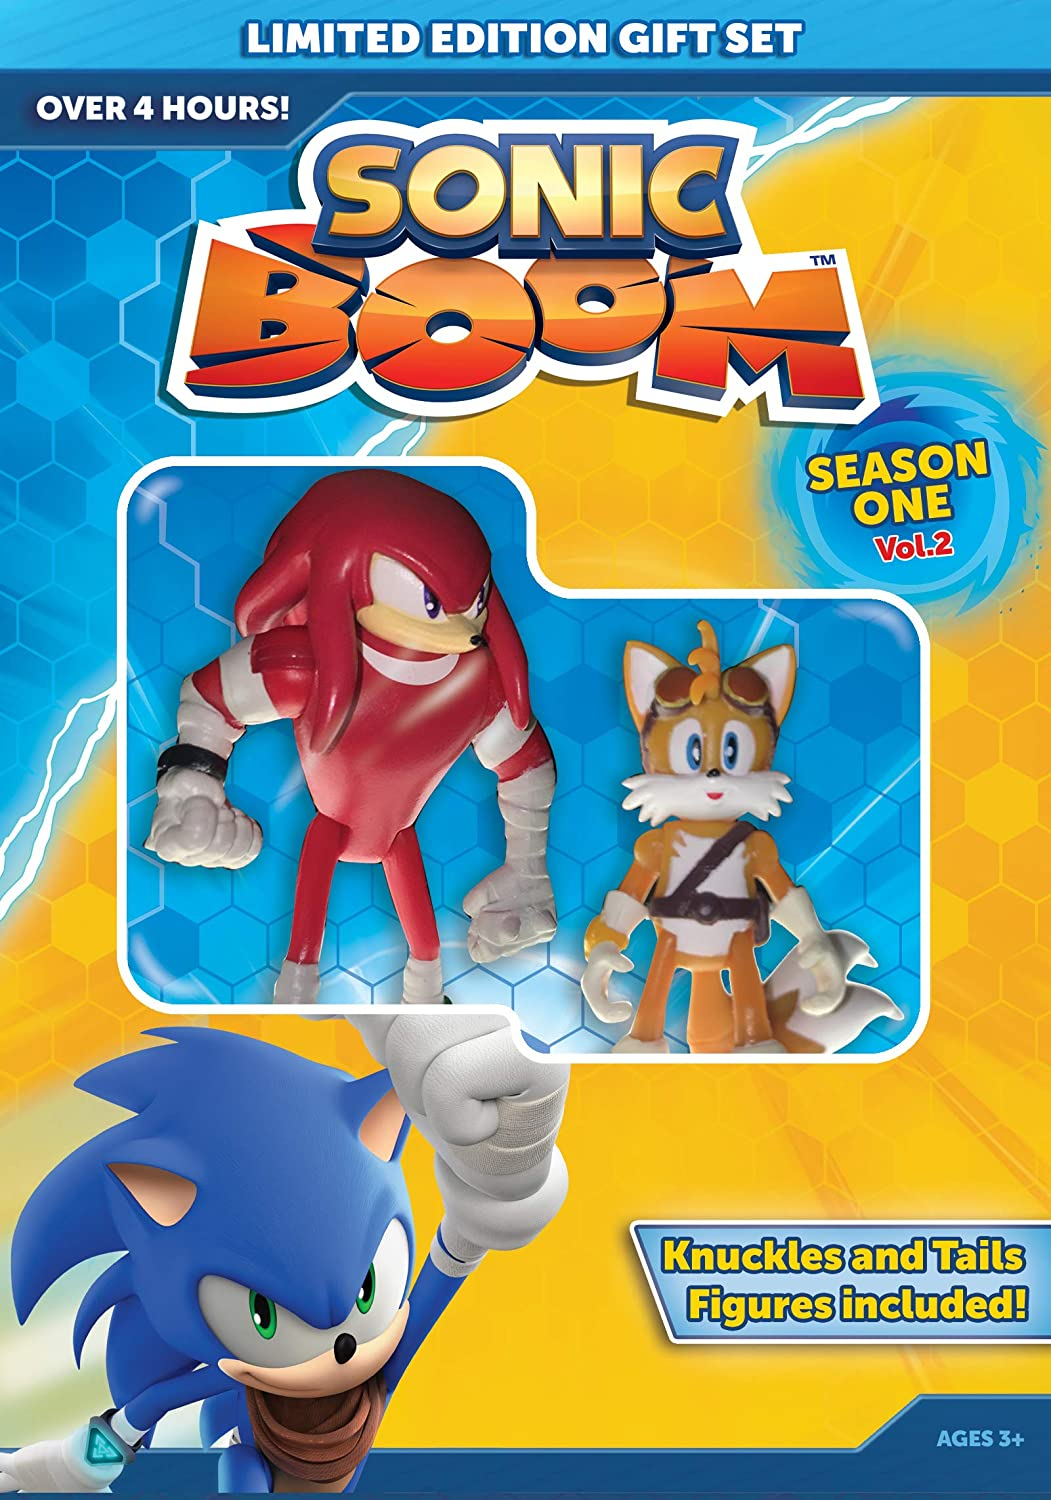 Amazon Com Sonic Boom Season 1 Vol 2 With Knuckles And Tails